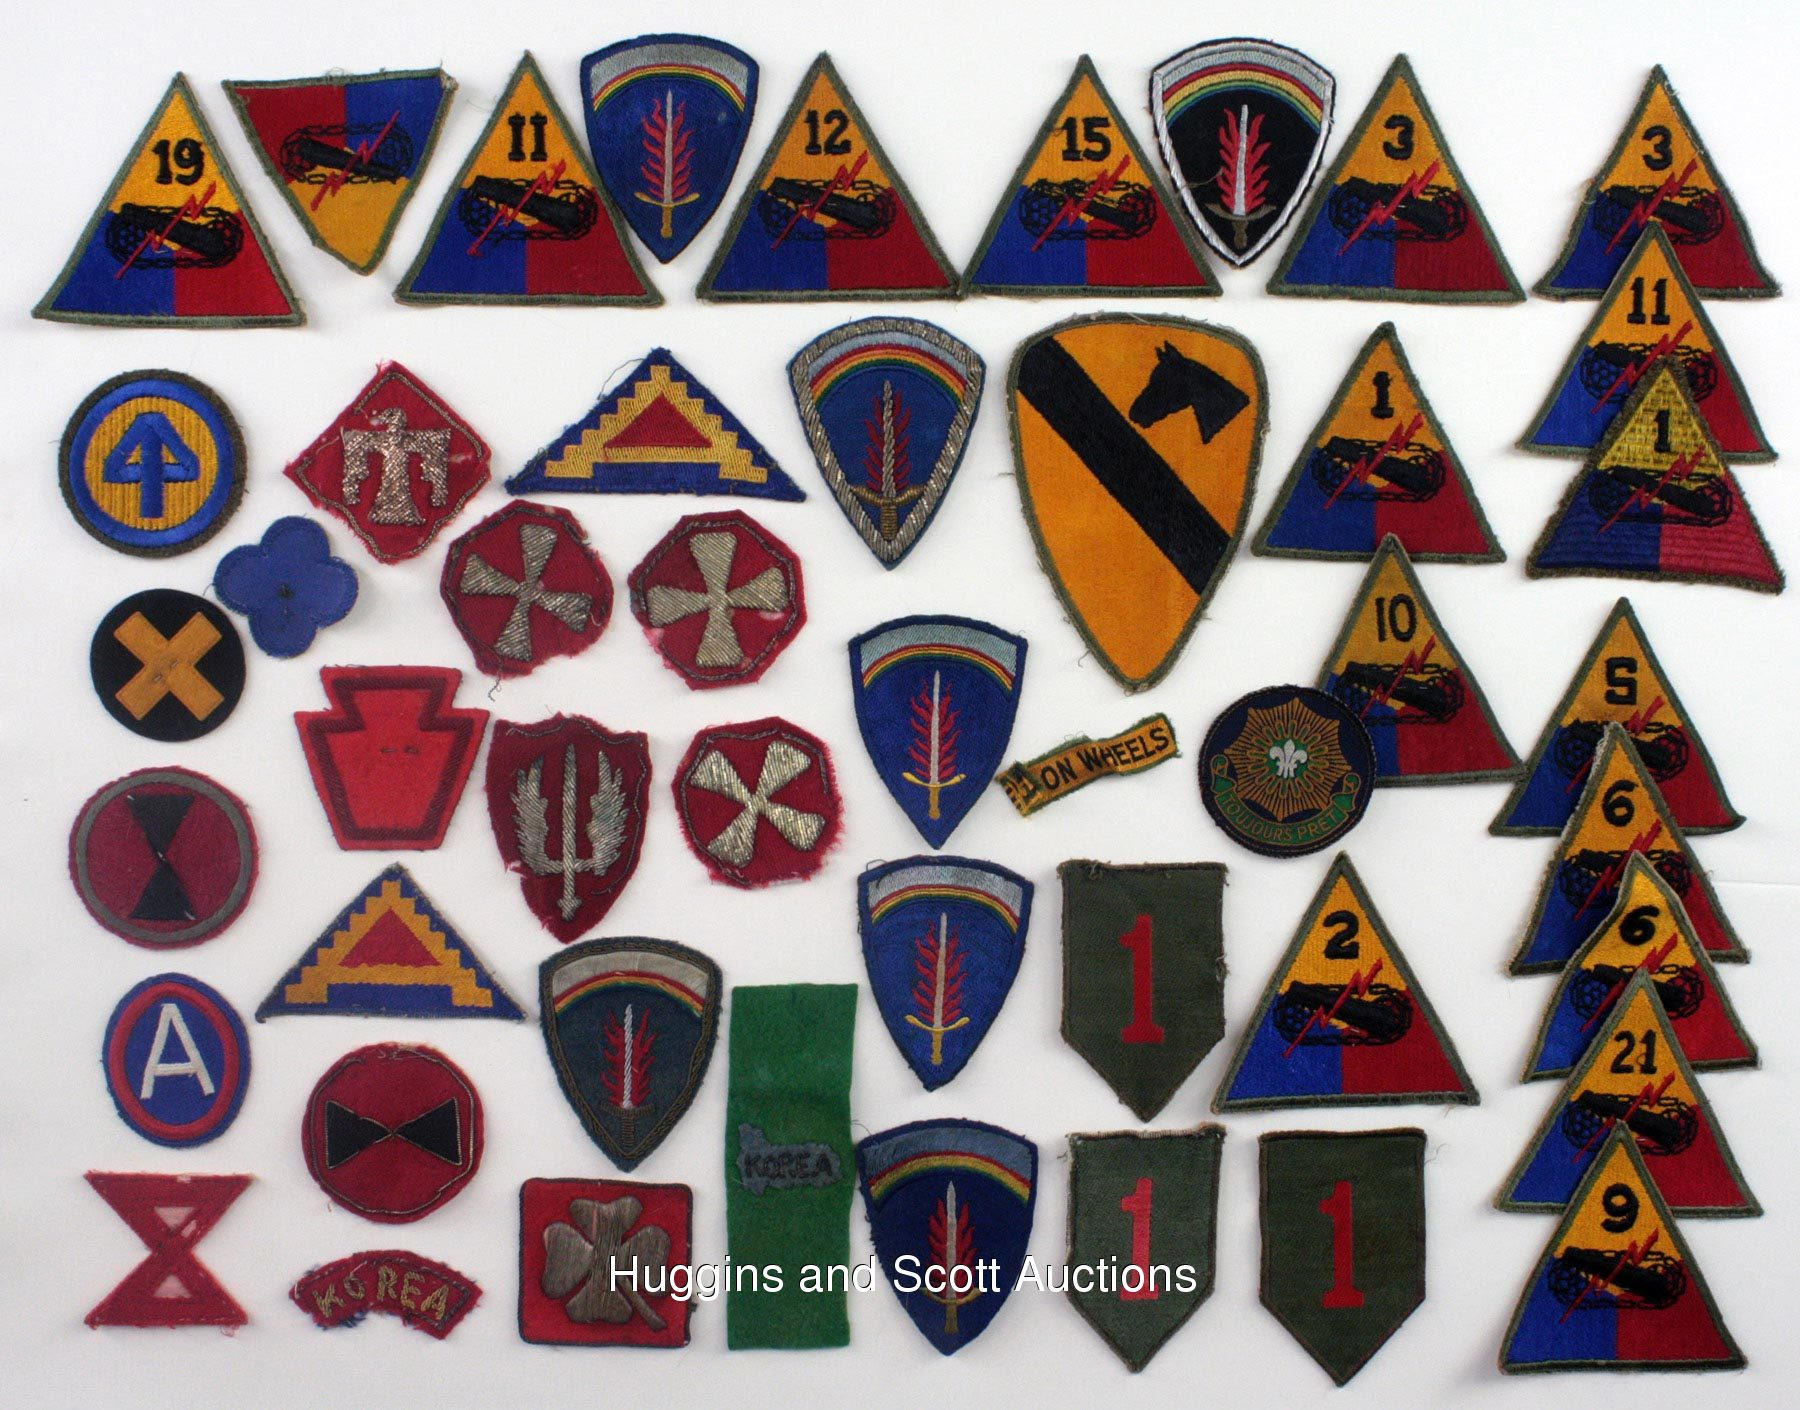 Army Ranks on Symbols Insignias of the United States Army